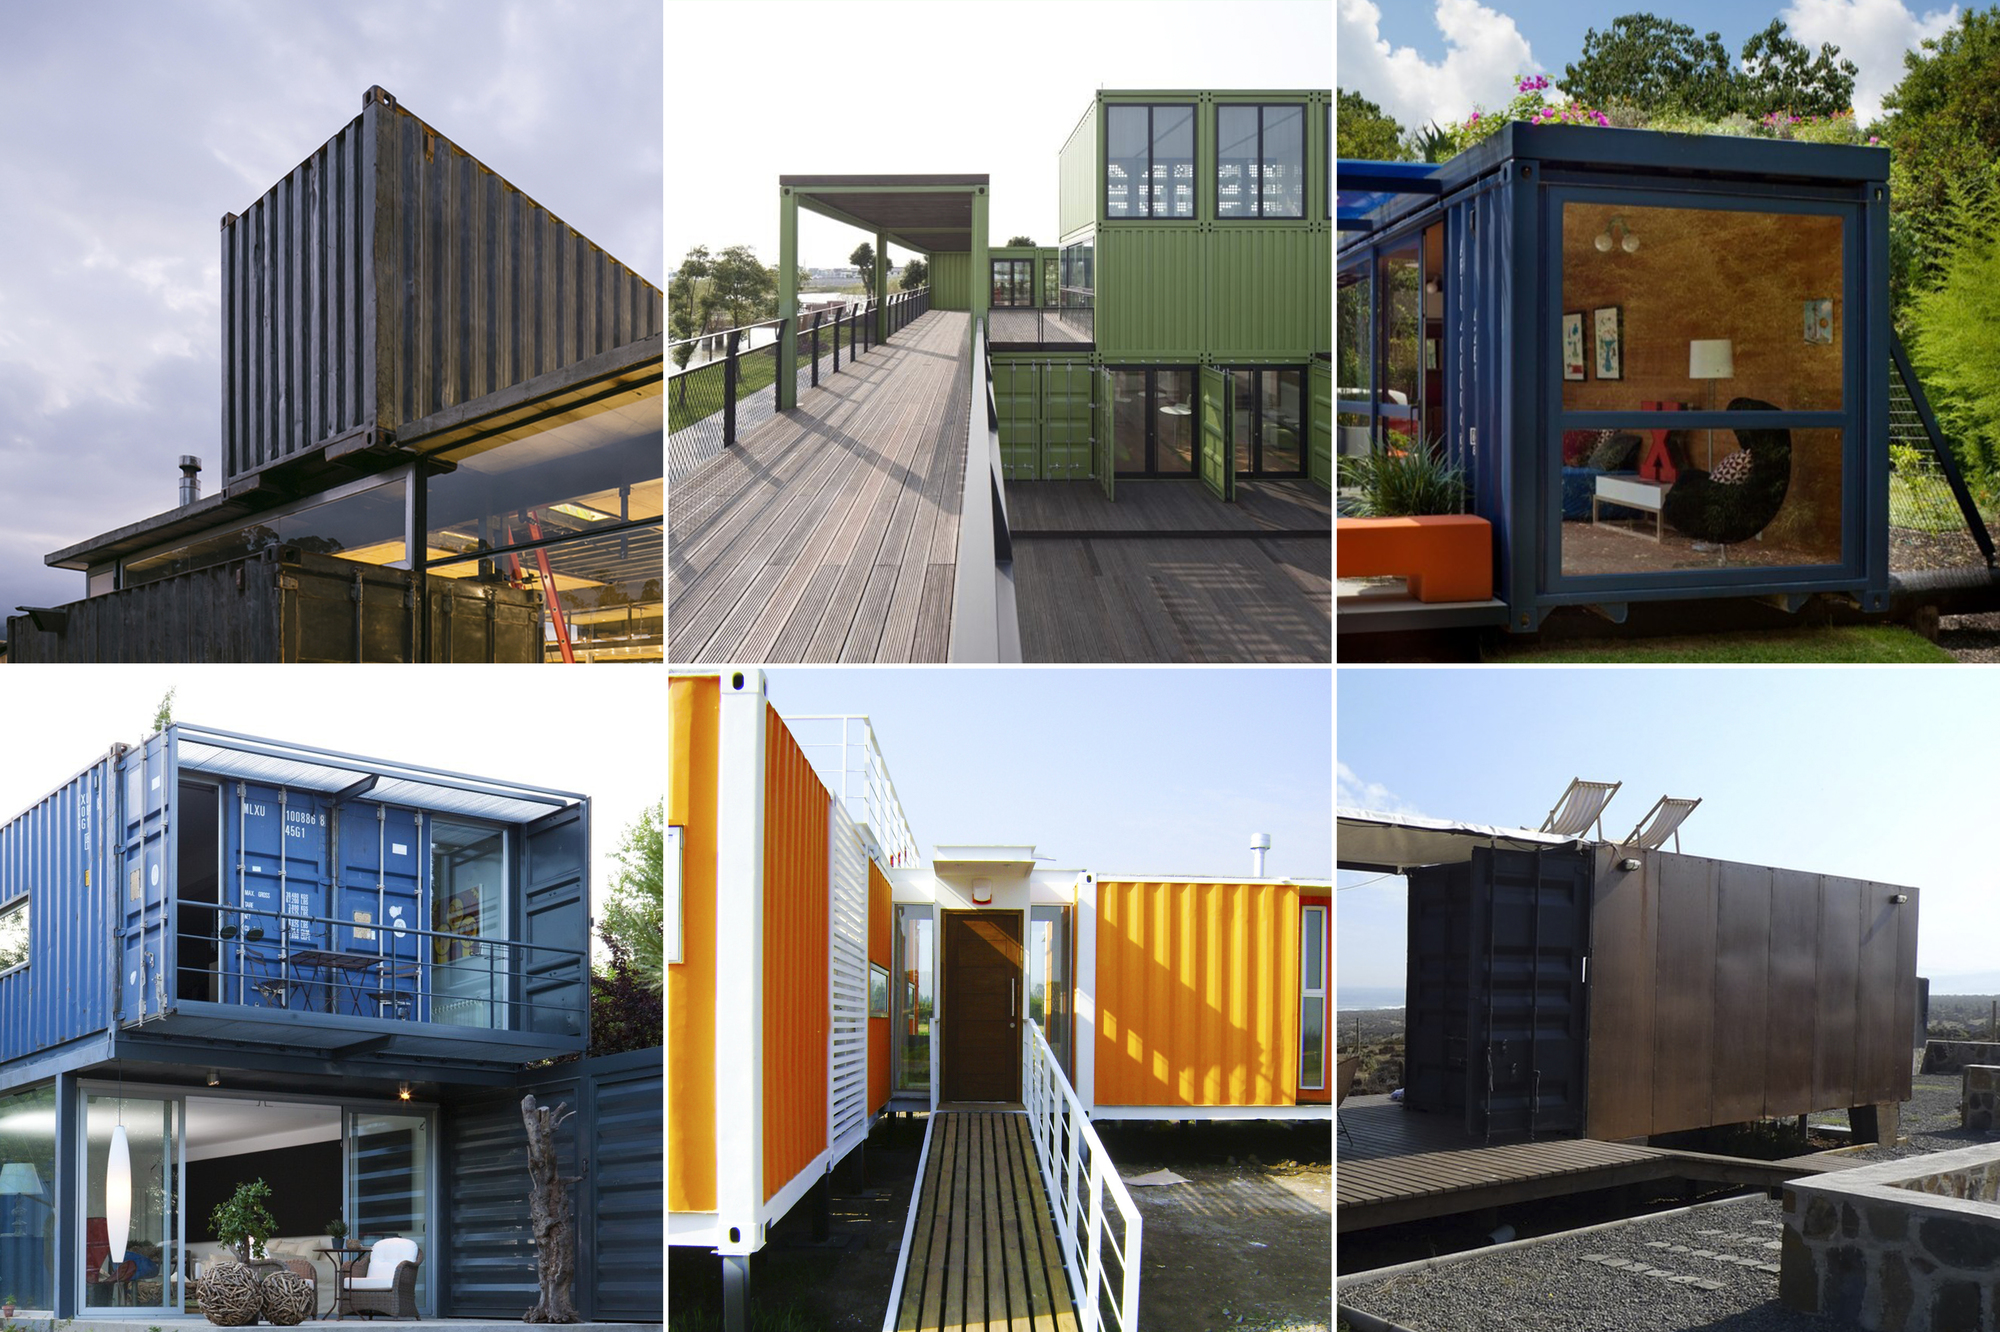 Method in Modular: 10 Floor Plans Using Shipping Container Architecture